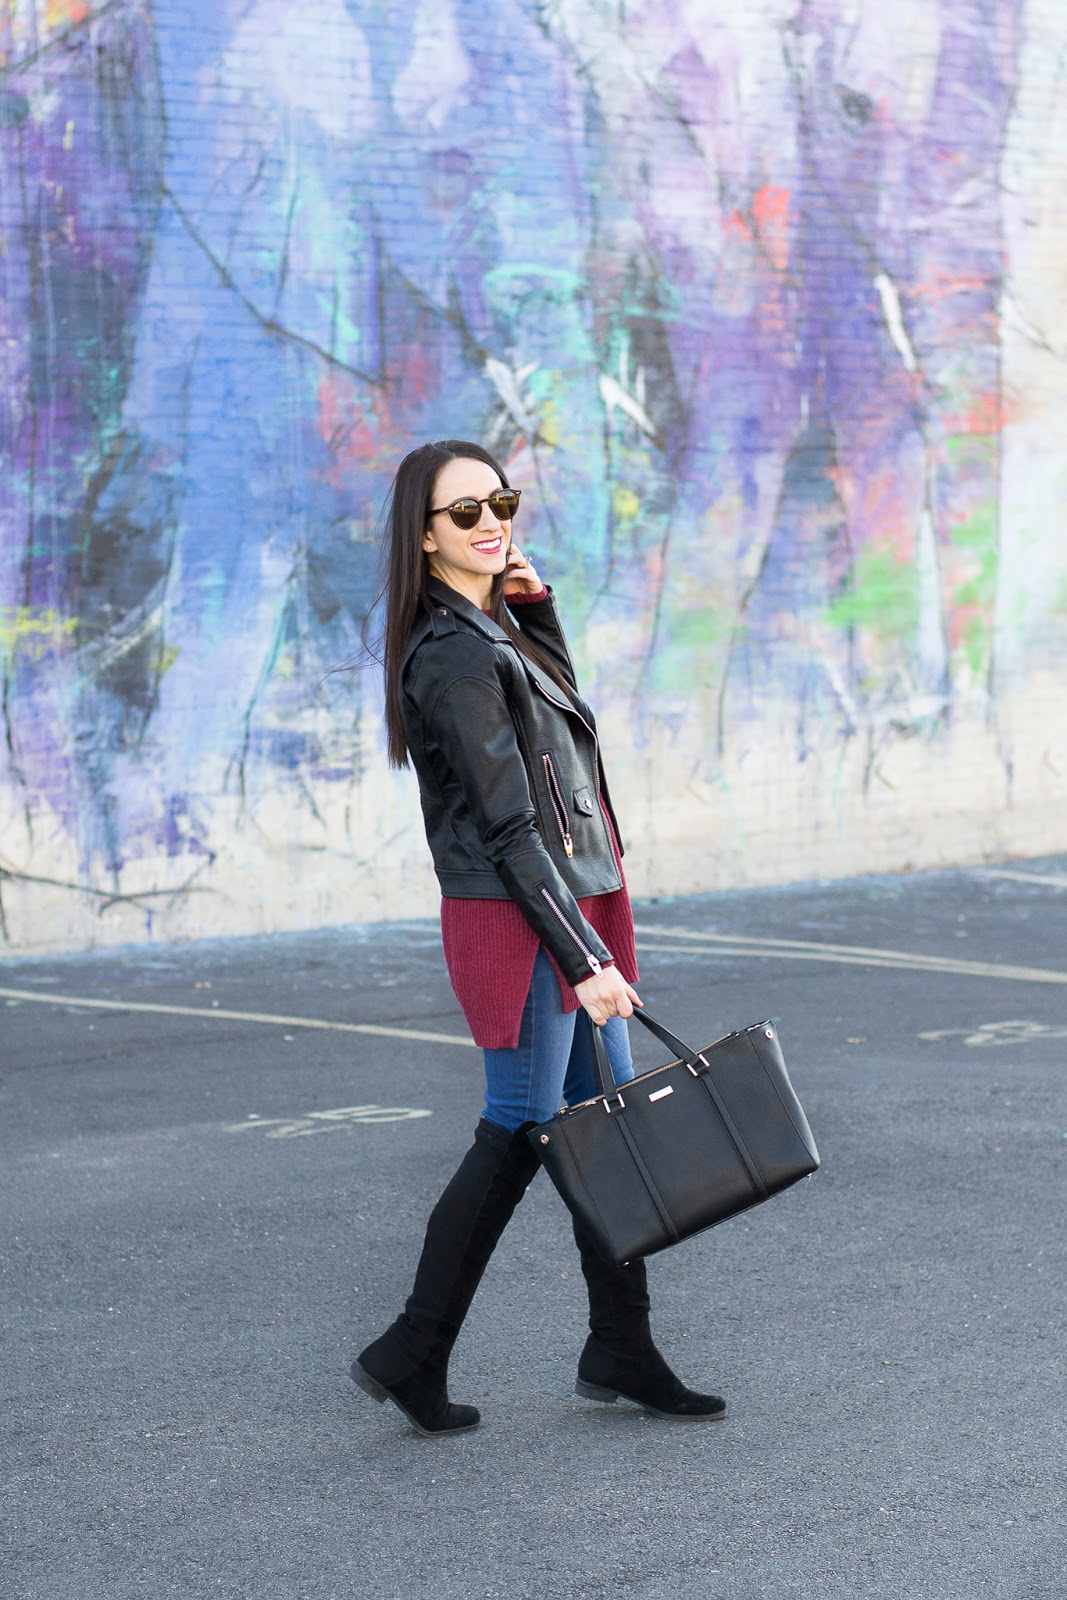 Tips for Styling a Faux Leather Jacket and Why Your Wardrobe Needs It